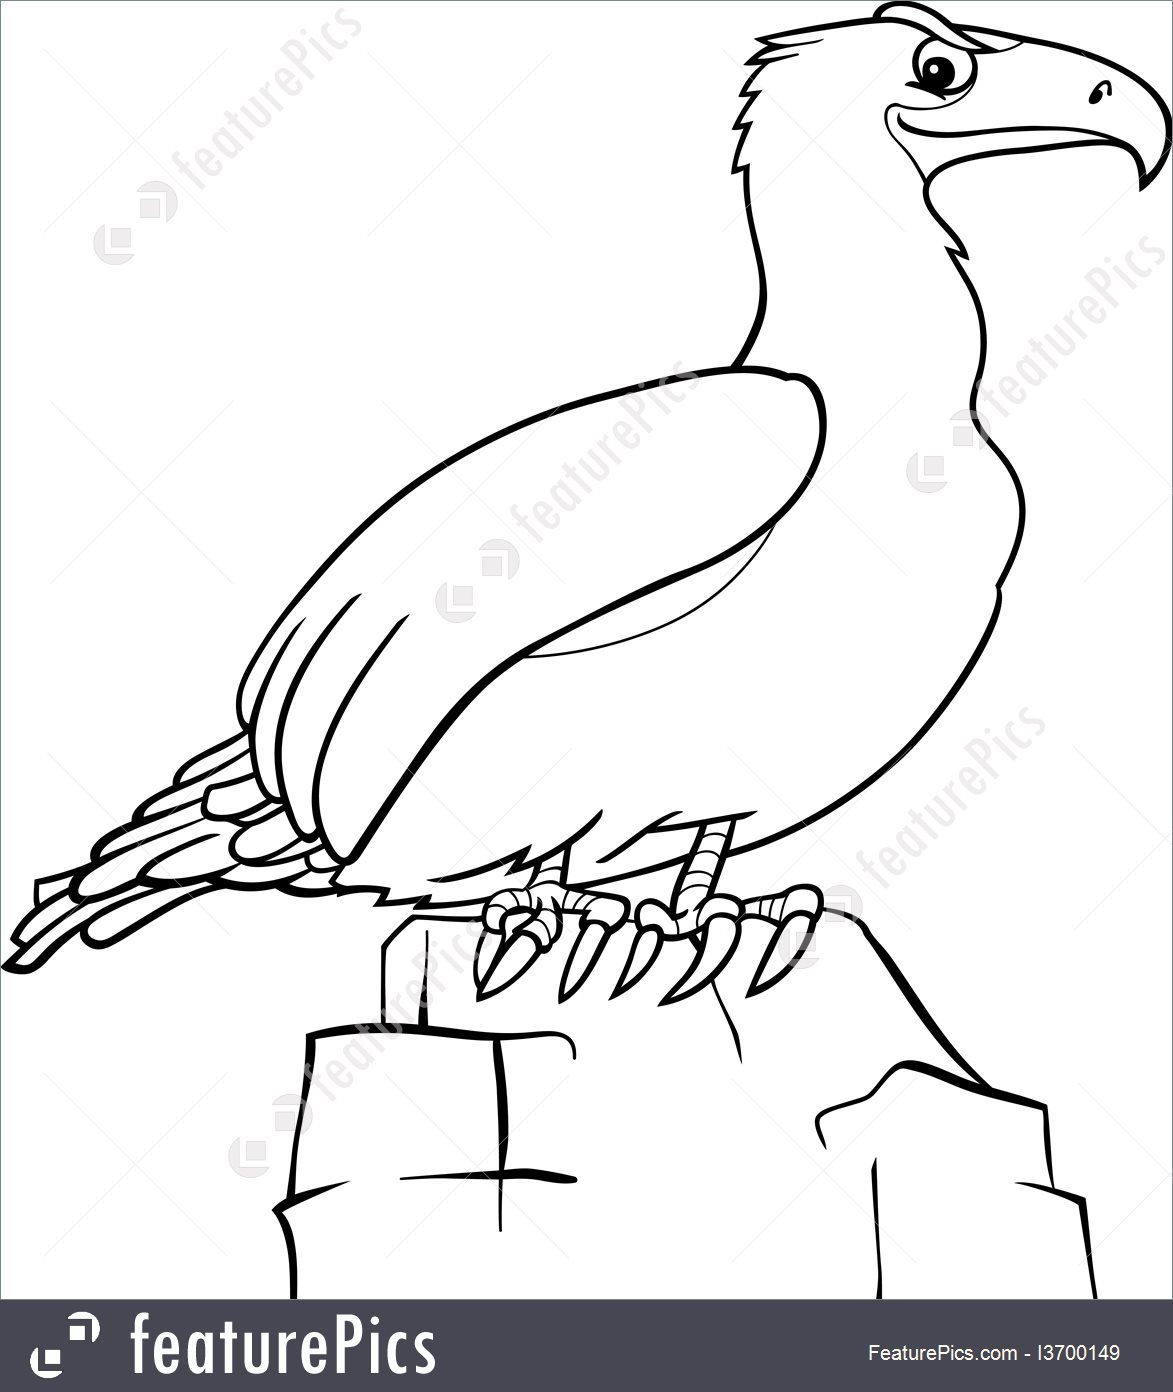 1173x1392 Illustration Of Cartoon Eagle For Coloring Book